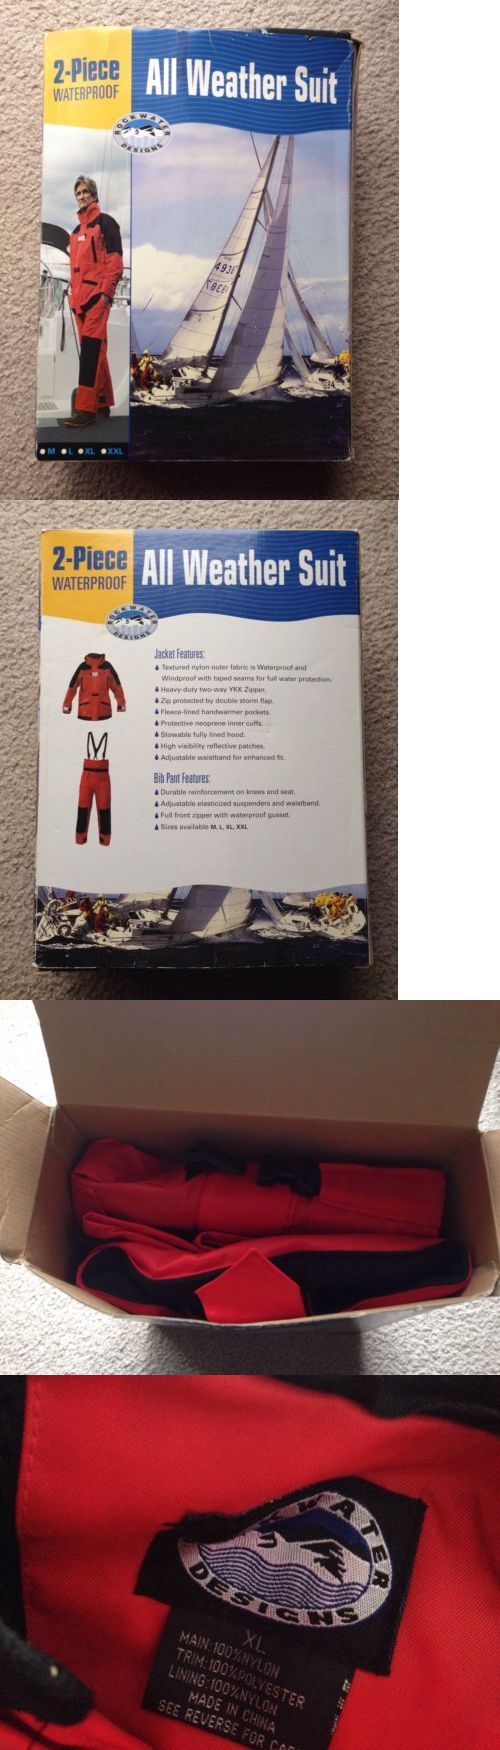 Jacket and Pants Sets 179981: (Xl) New Rockwater 2Pc All Weather Suit Rain Sleet Snow Waterproof Jacket Pants -> BUY IT NOW ONLY: $49.99 on eBay!